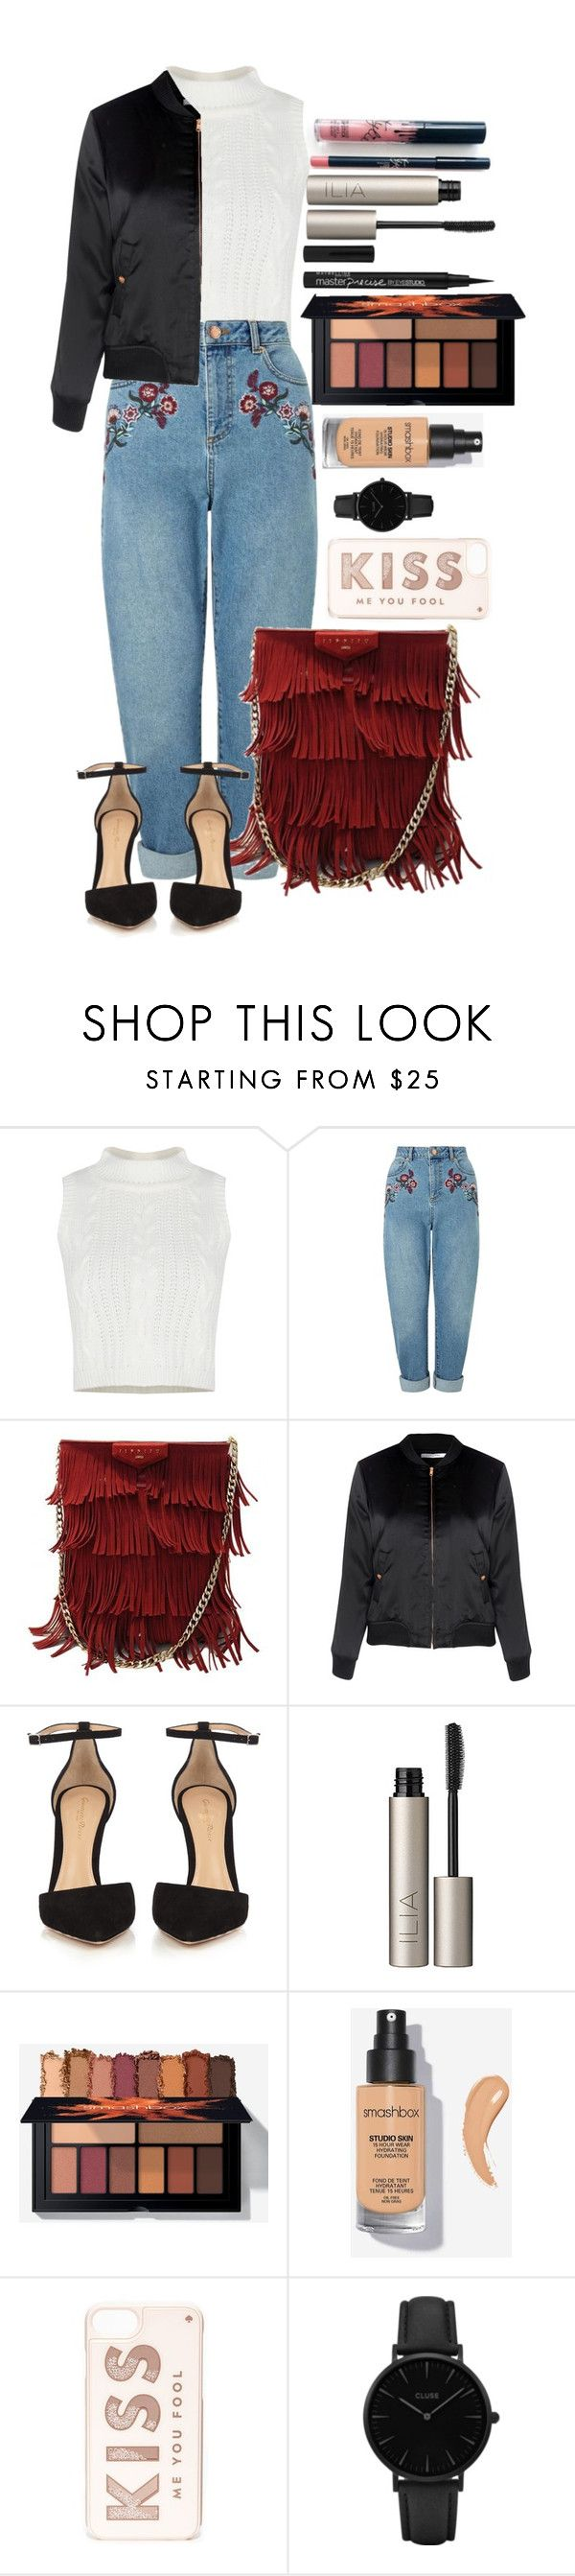 """Untitled #1704"" by fabianarveloc on Polyvore featuring Kylie Cosmetics, Miss Selfridge, Glamorous, Gianvito Rossi, Ilia, Kate Spade and CLUSE"